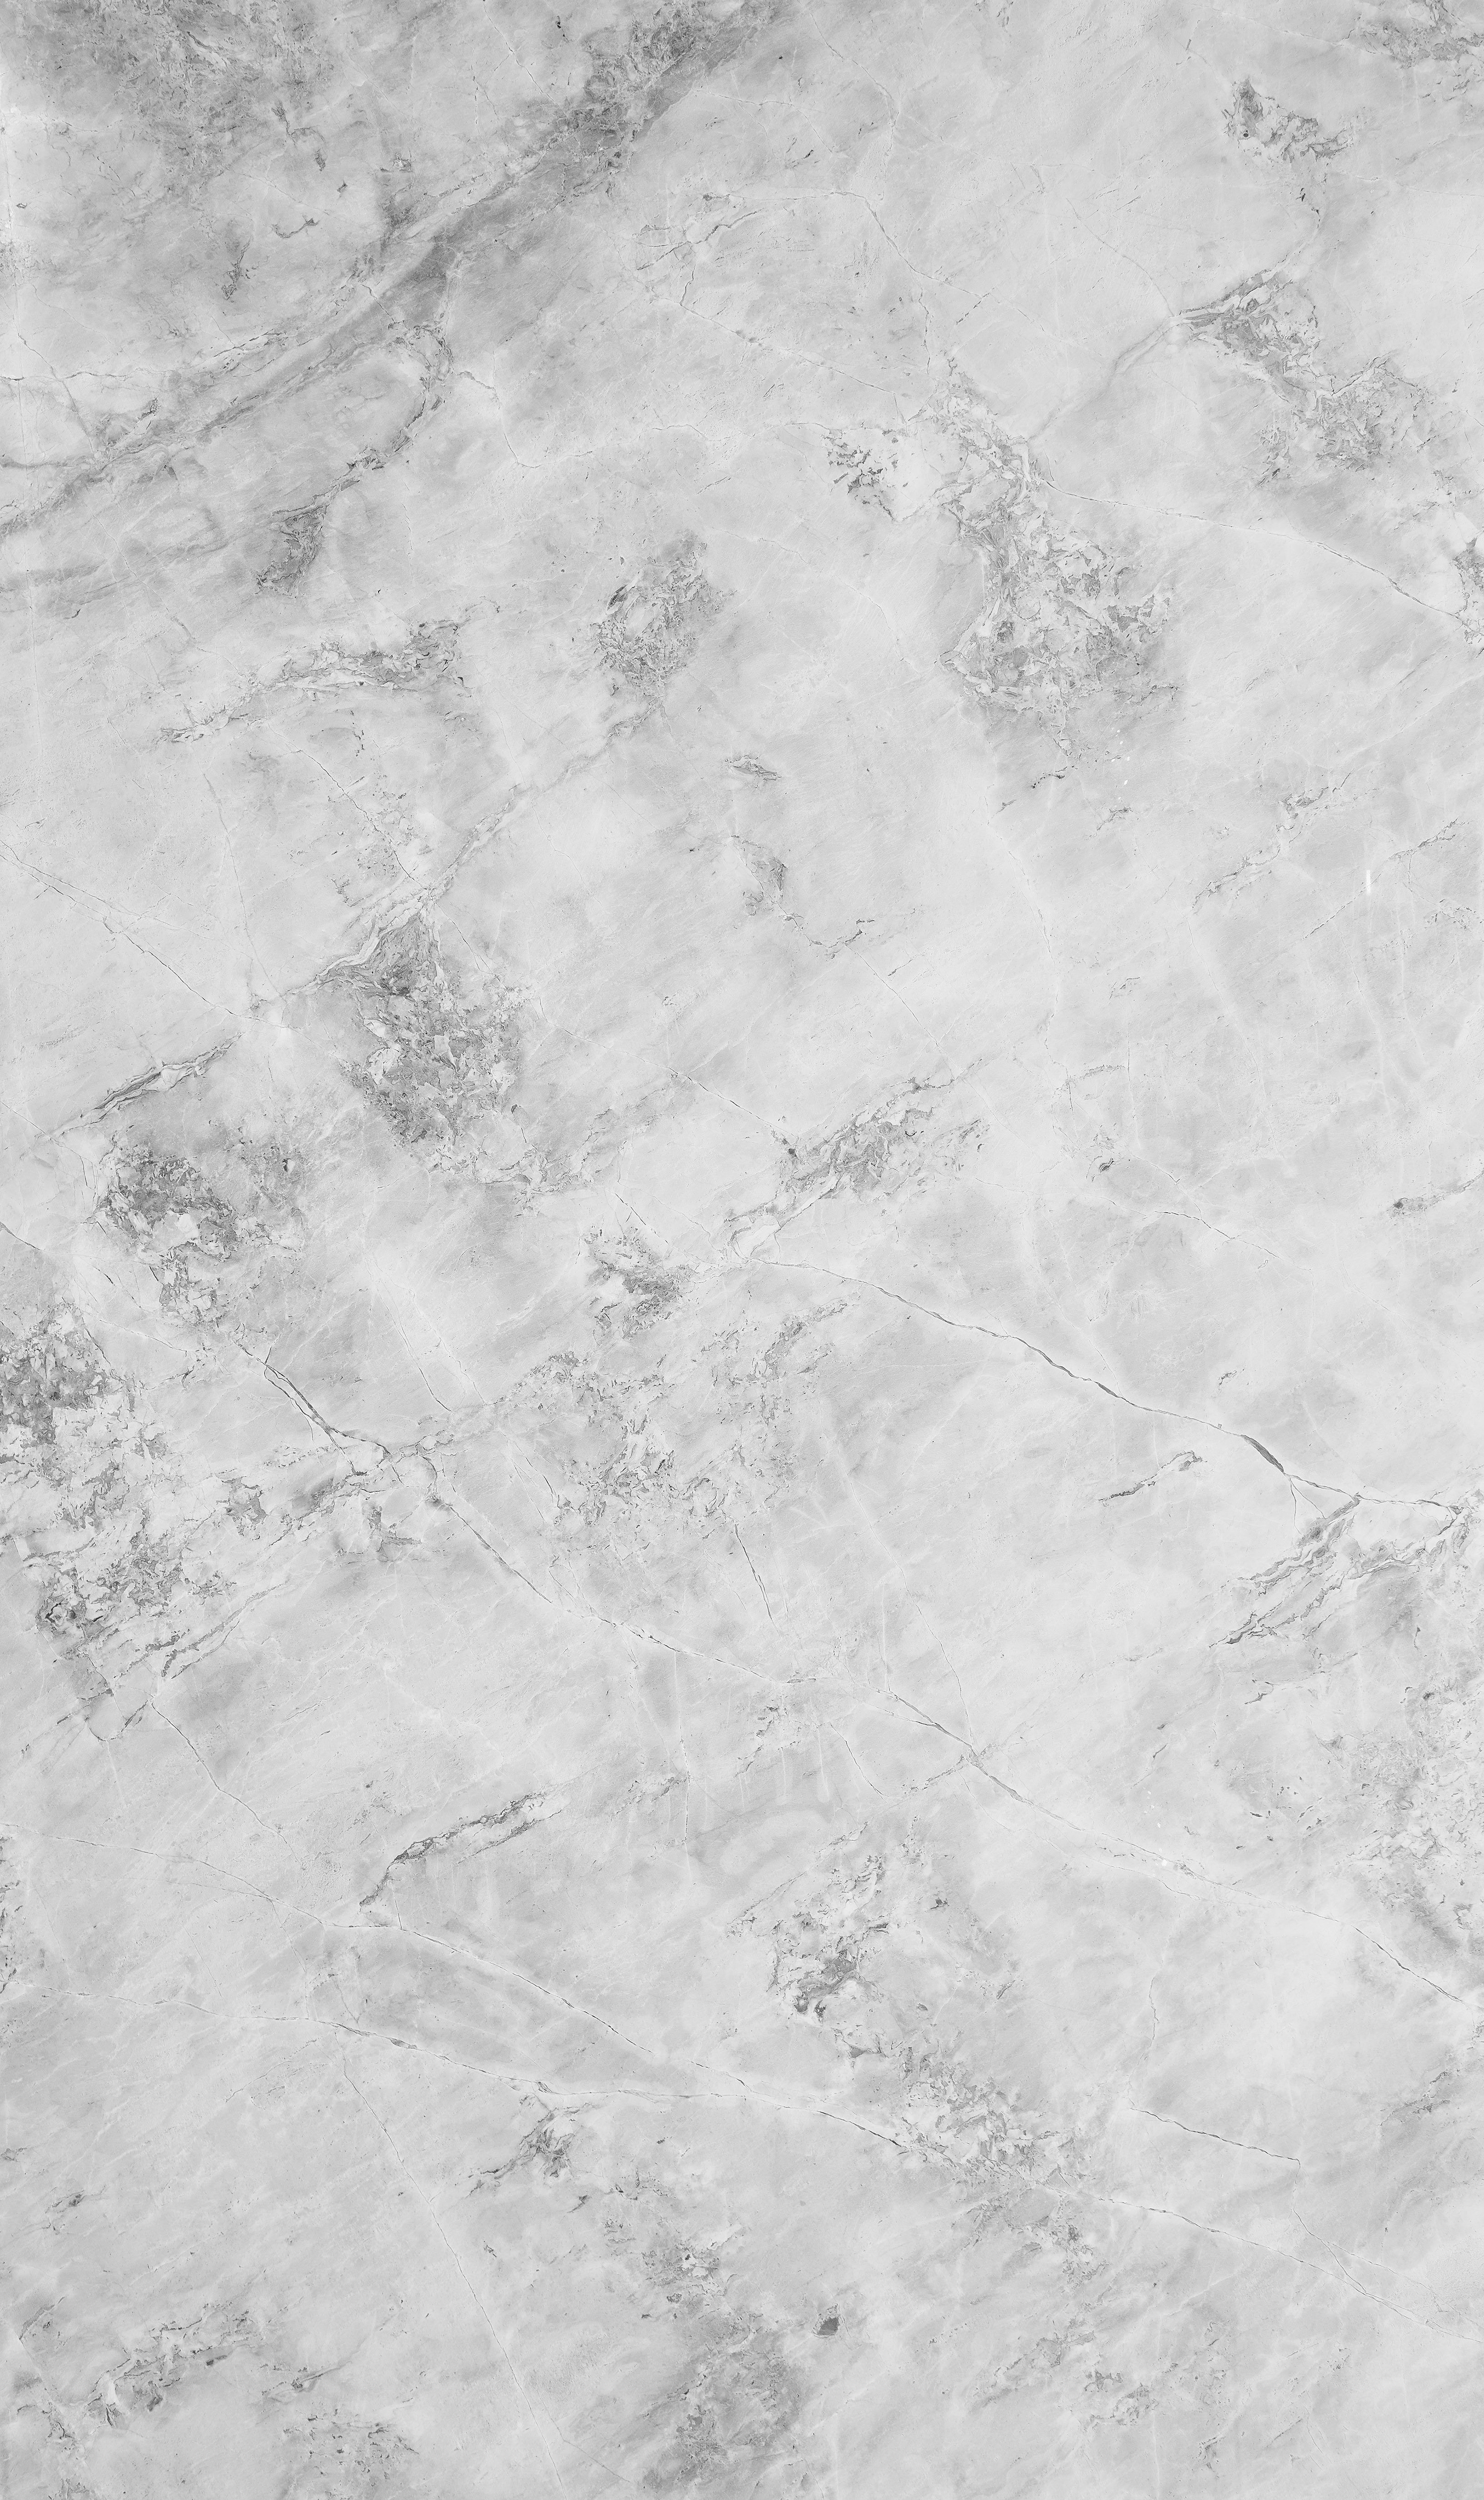 114369 download wallpaper Textures, Texture, Grey, Stains, Spots, Cracks, Crack, Marble screensavers and pictures for free